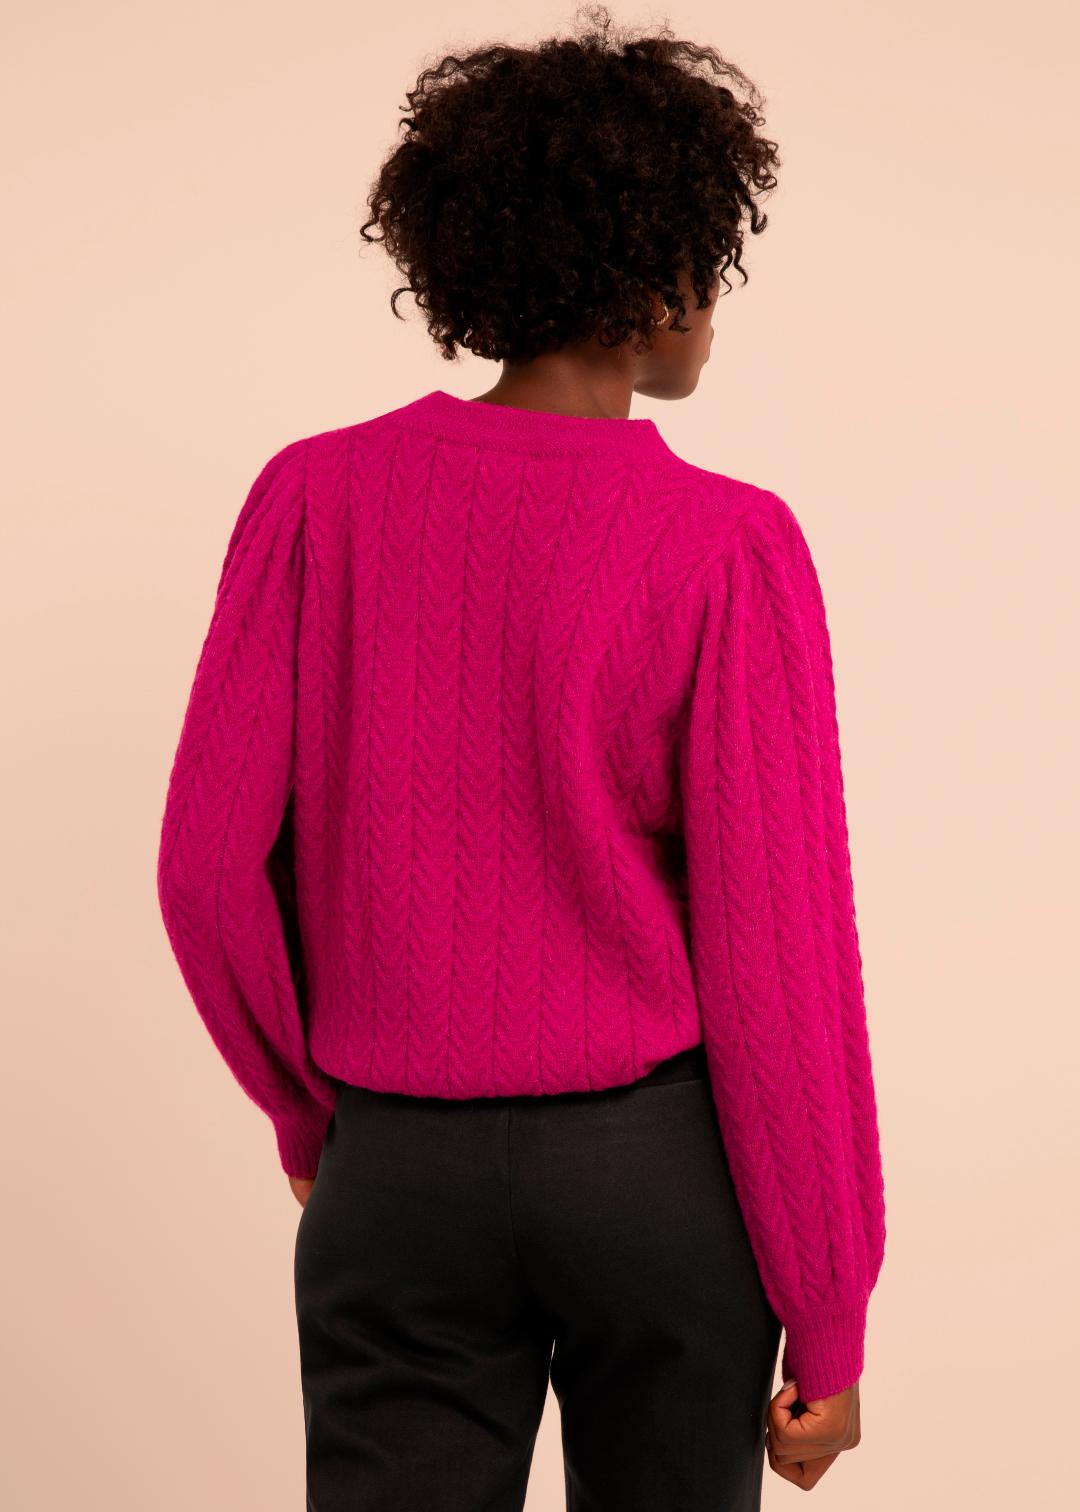 Neve Sweater in Fuchsia